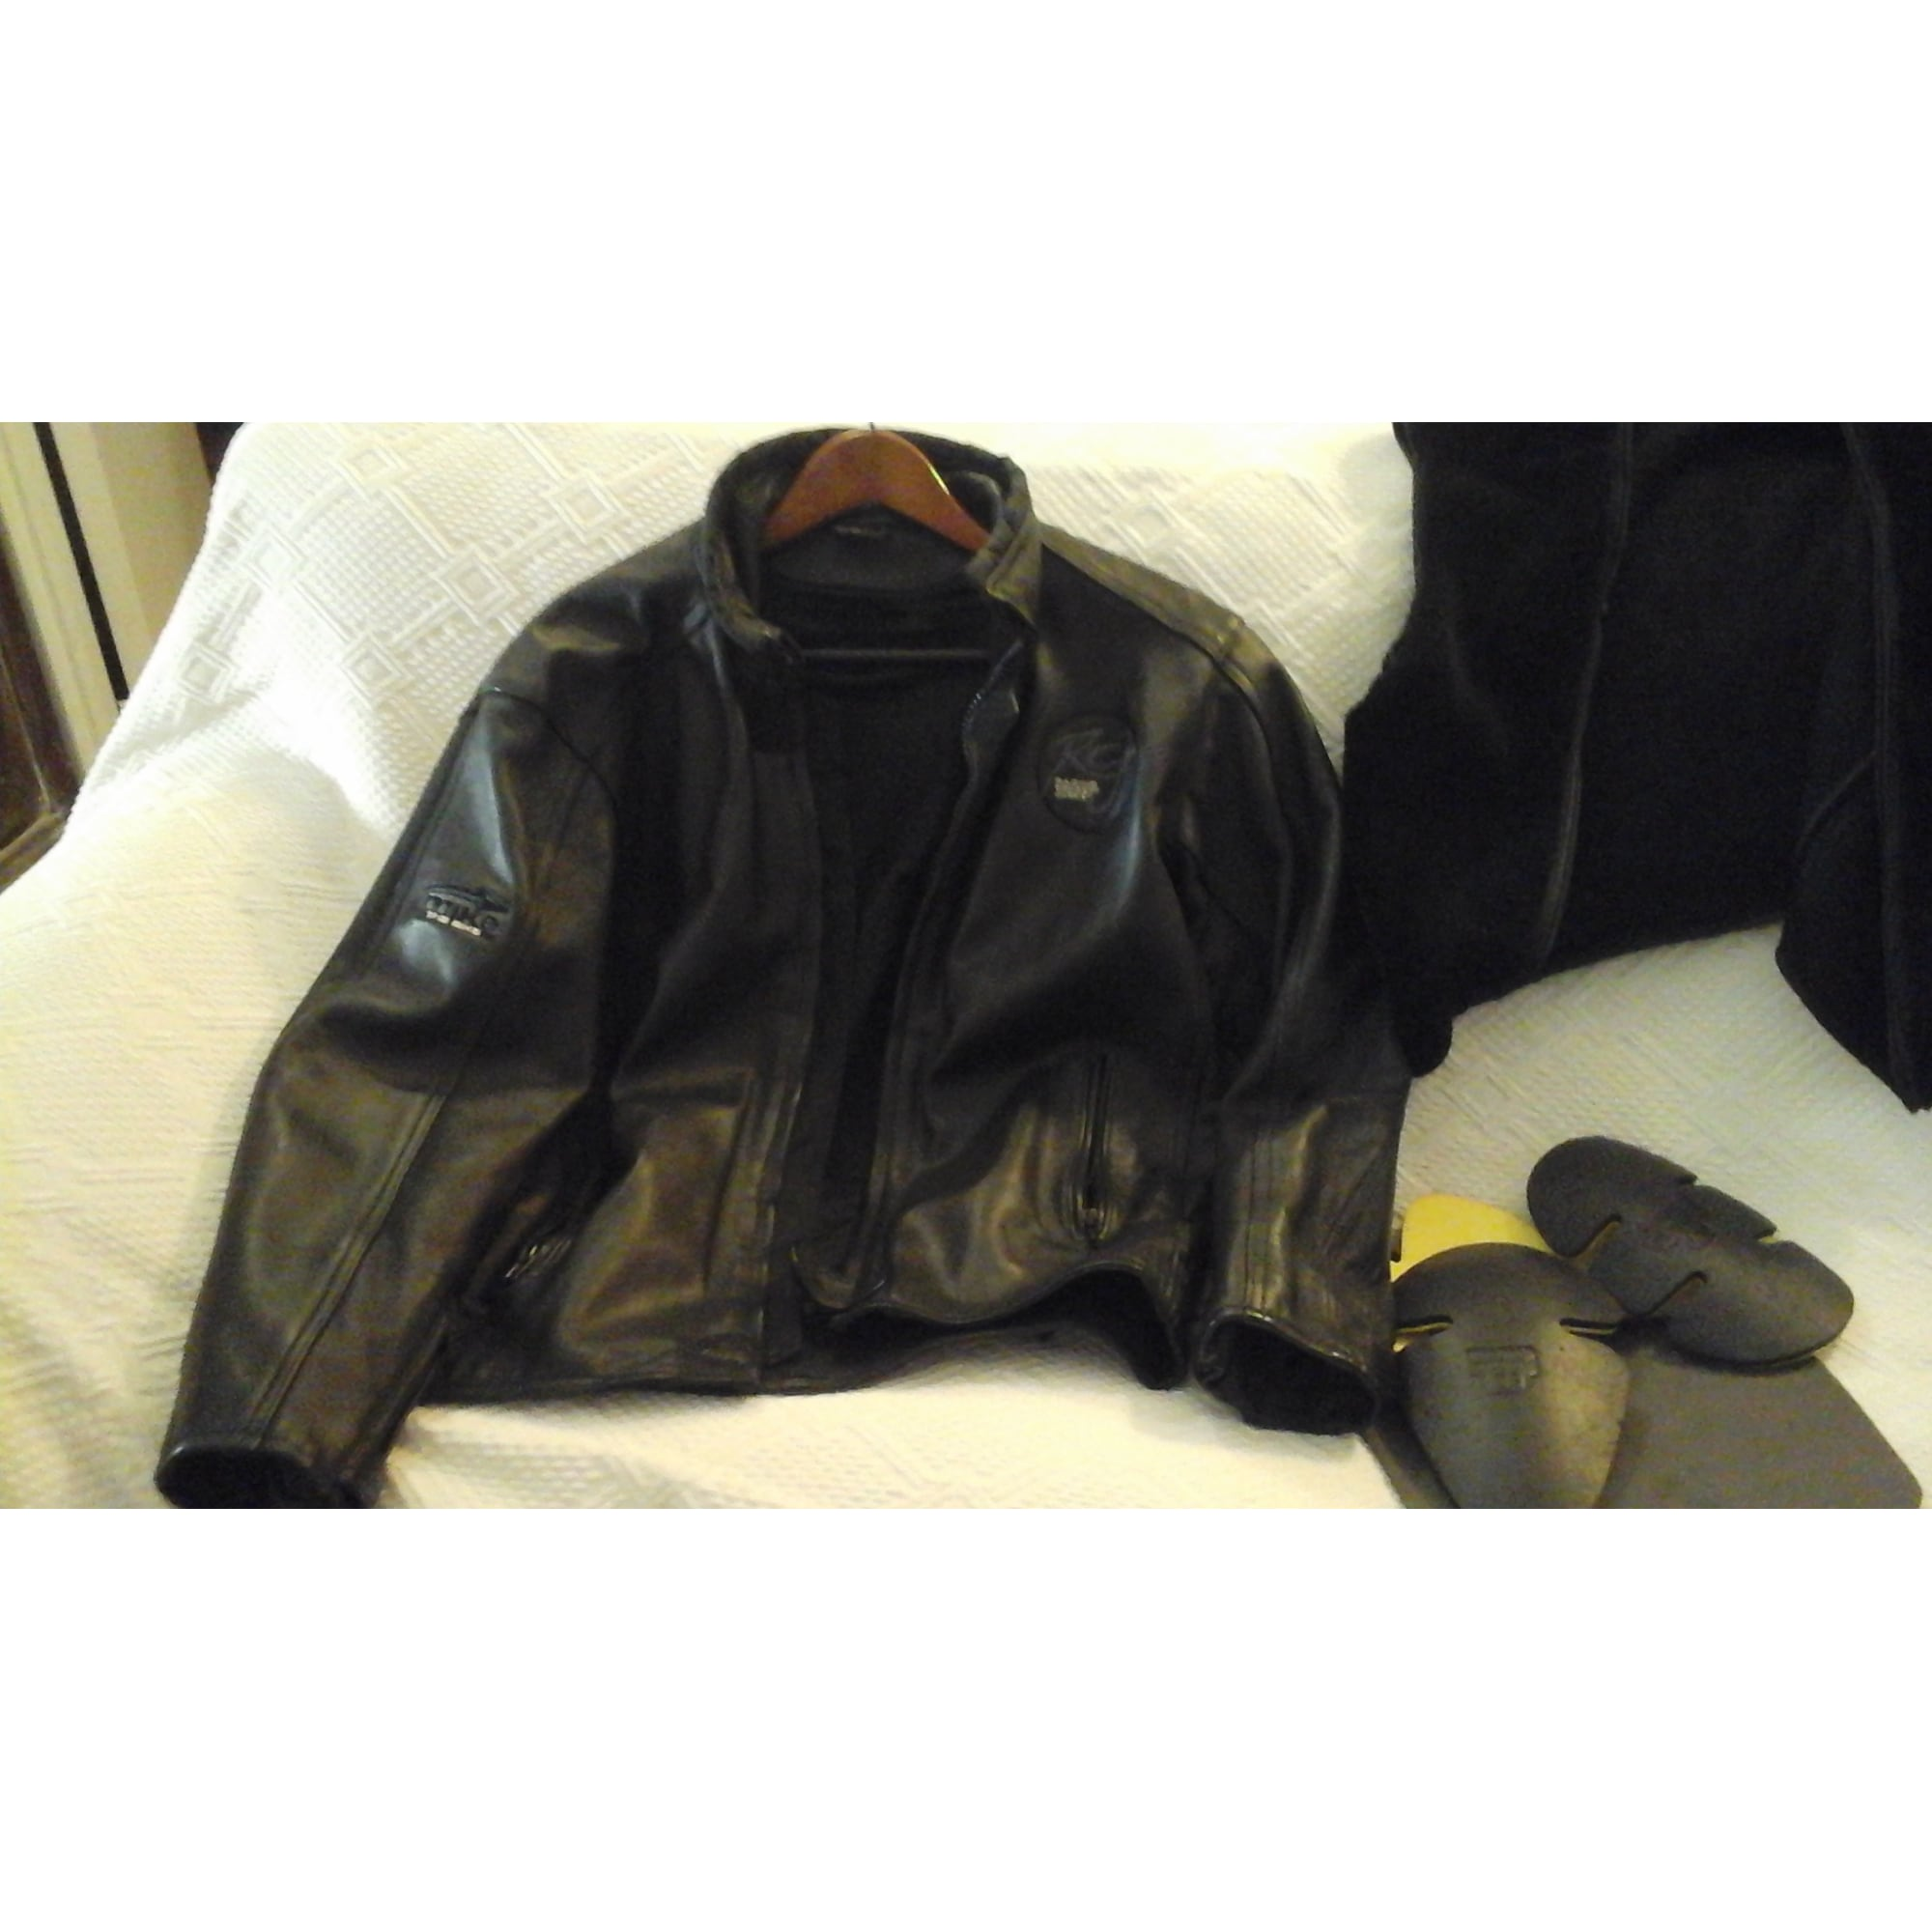 T3 En 6734681 l The 40 Noir Blouson Bike Cuir Mike 1qxxP0